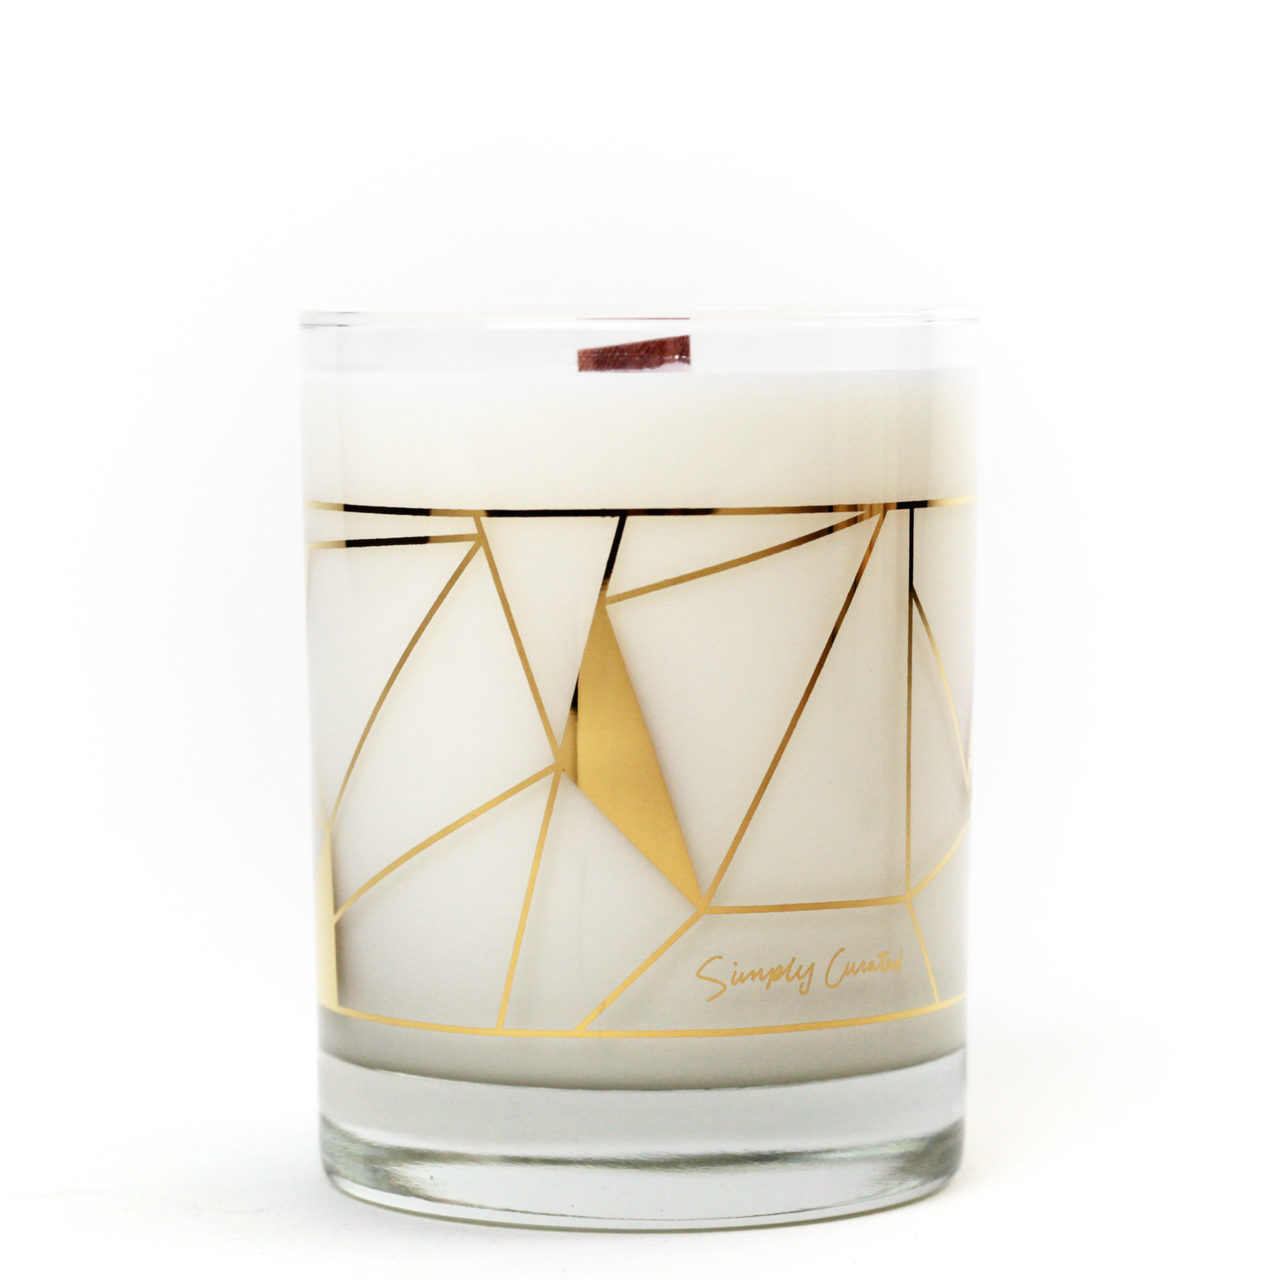 Oakmoss and leather soy candle